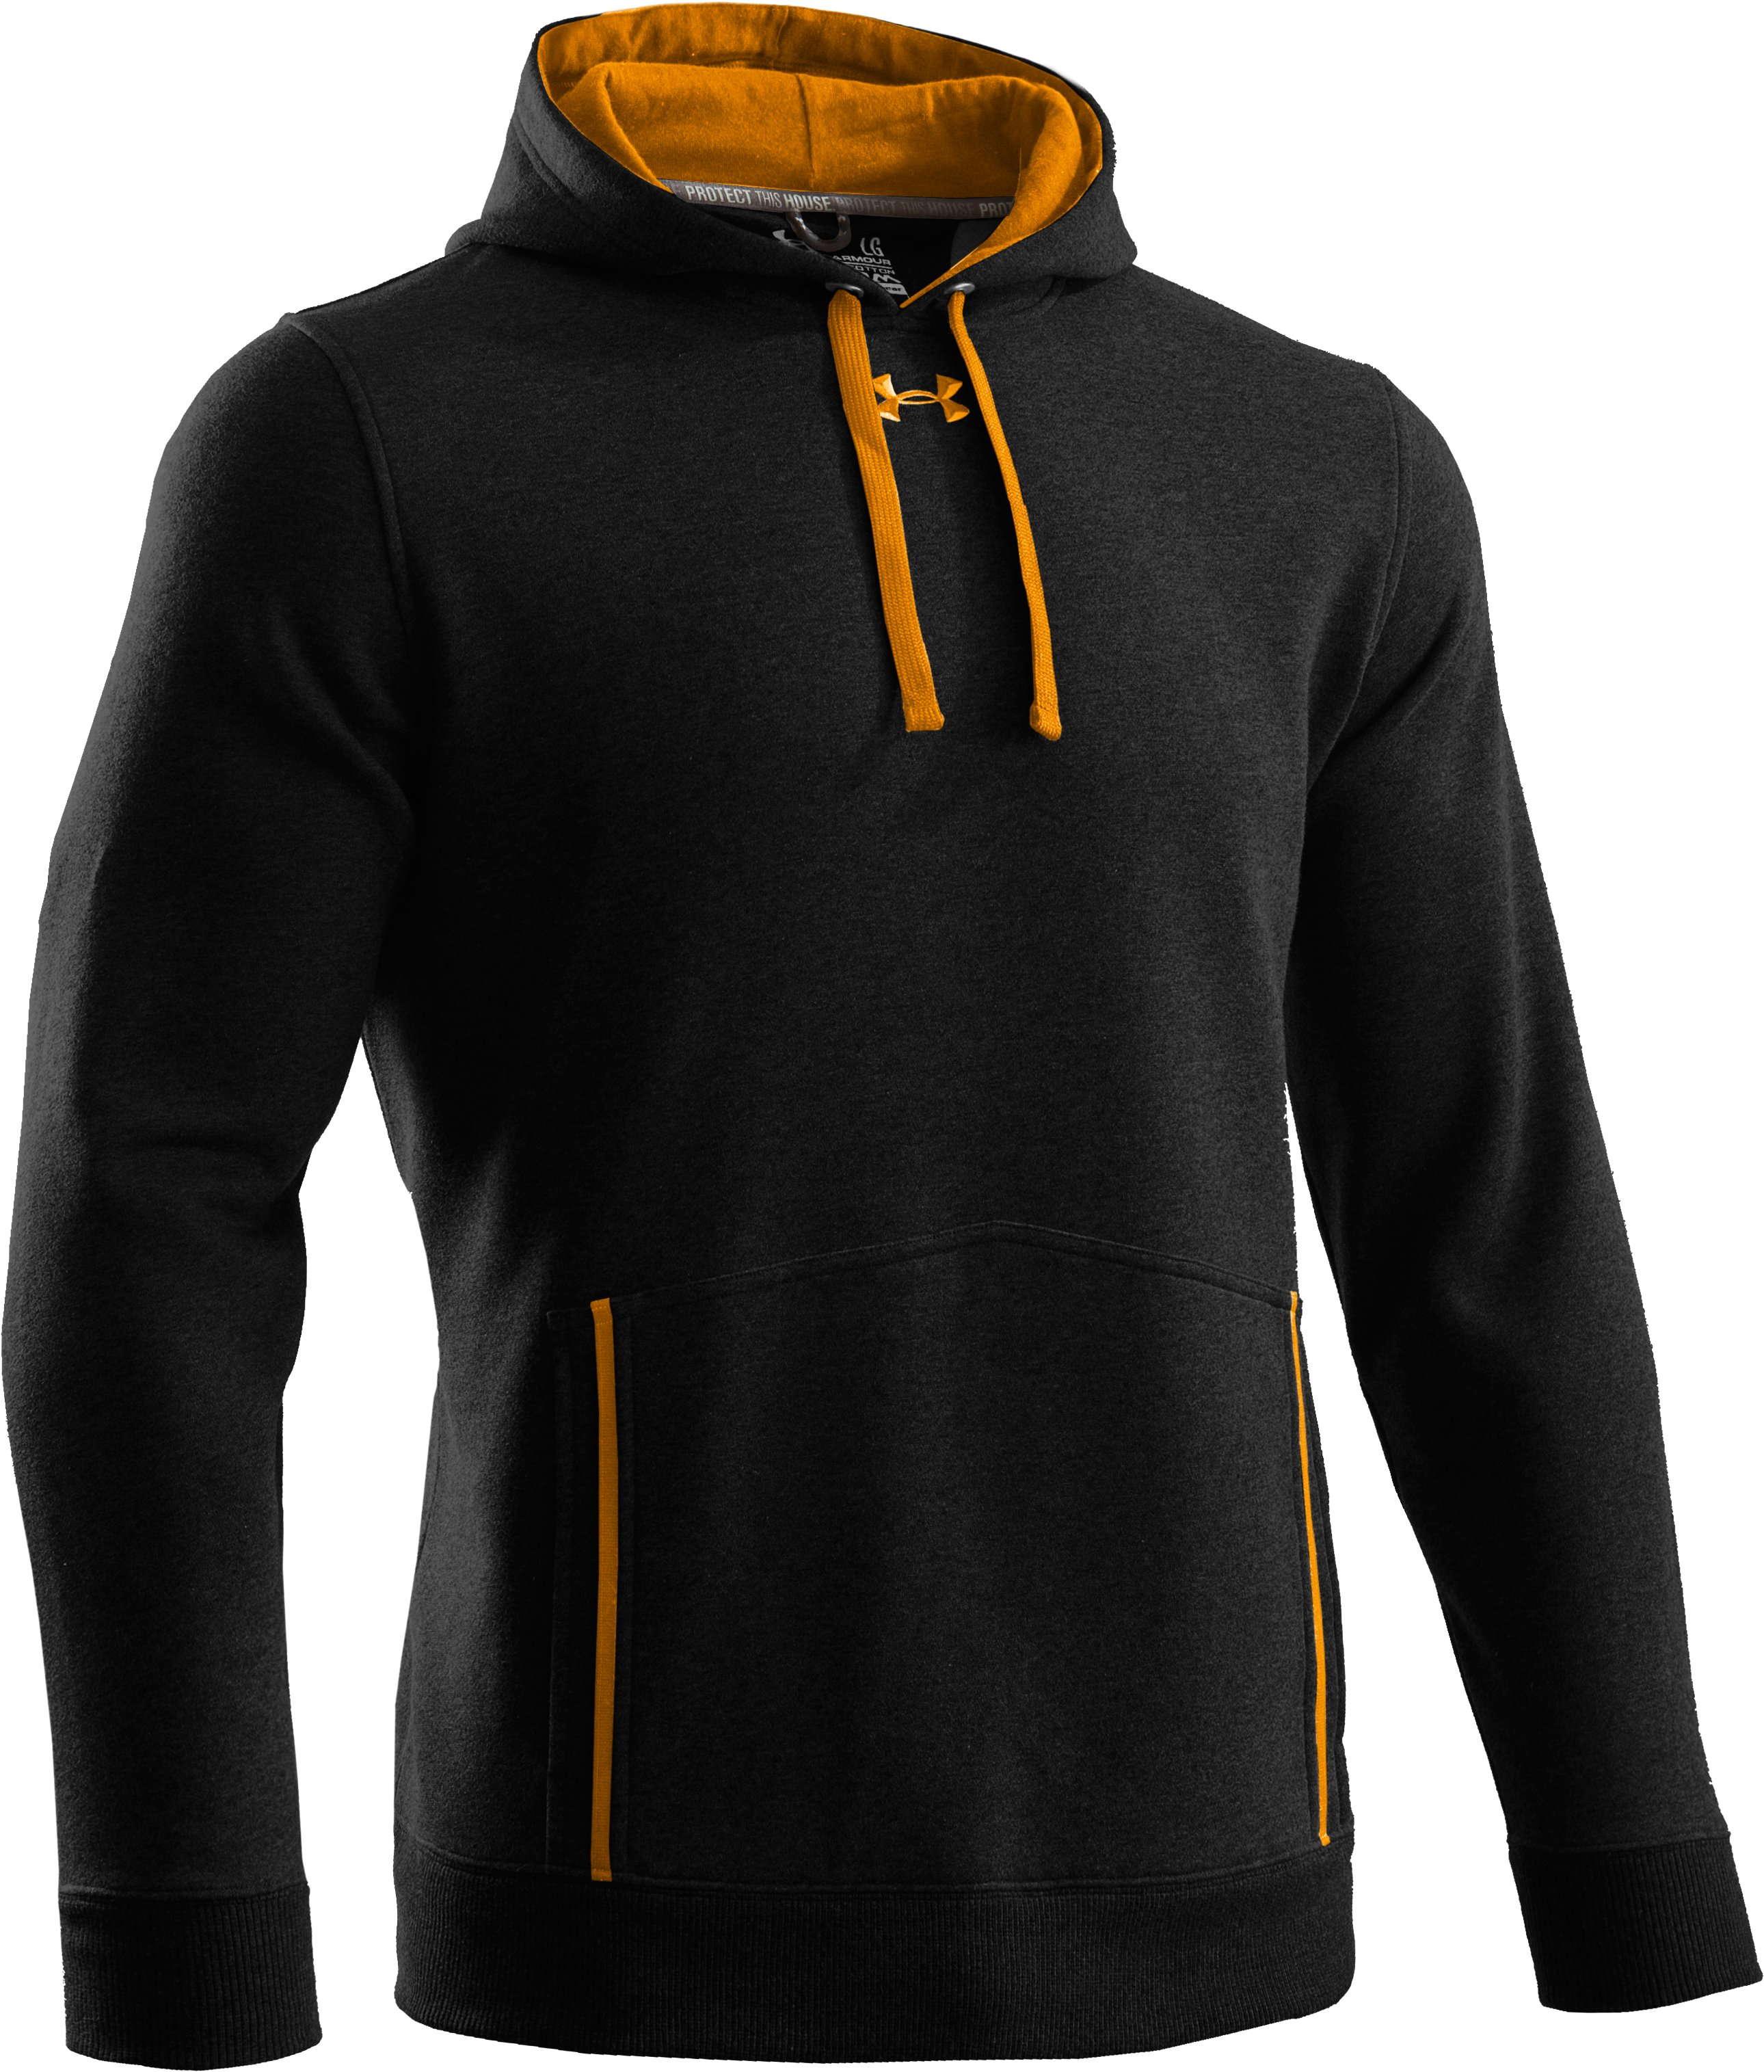 Men's Charged Cotton® Storm Relentless Team Hoodie, Black